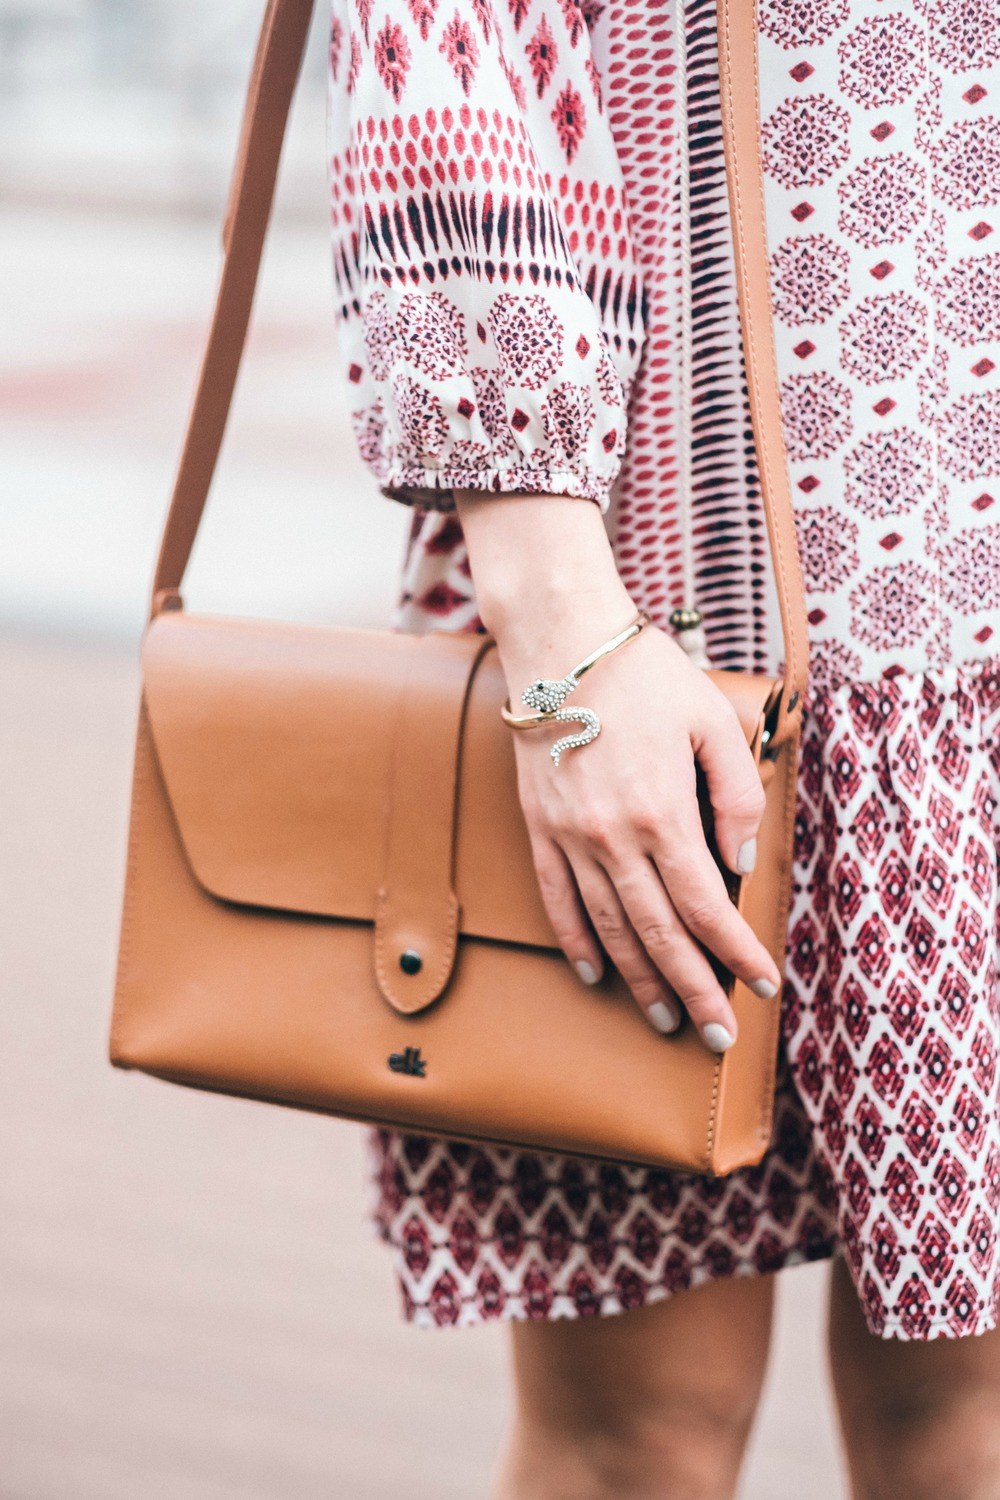 Jeweled Snake Bracelet Shop Design Spark Louboutins & Love Fashion Blog Esther Santer NYC Street Style Blogger Outfit OOTD Trendy Gold Jewelry Dress Print Elk Accessories Tan Bag Girl Women Fad Online Shopping Photoshoot Collaboration Spring Summer.jpg